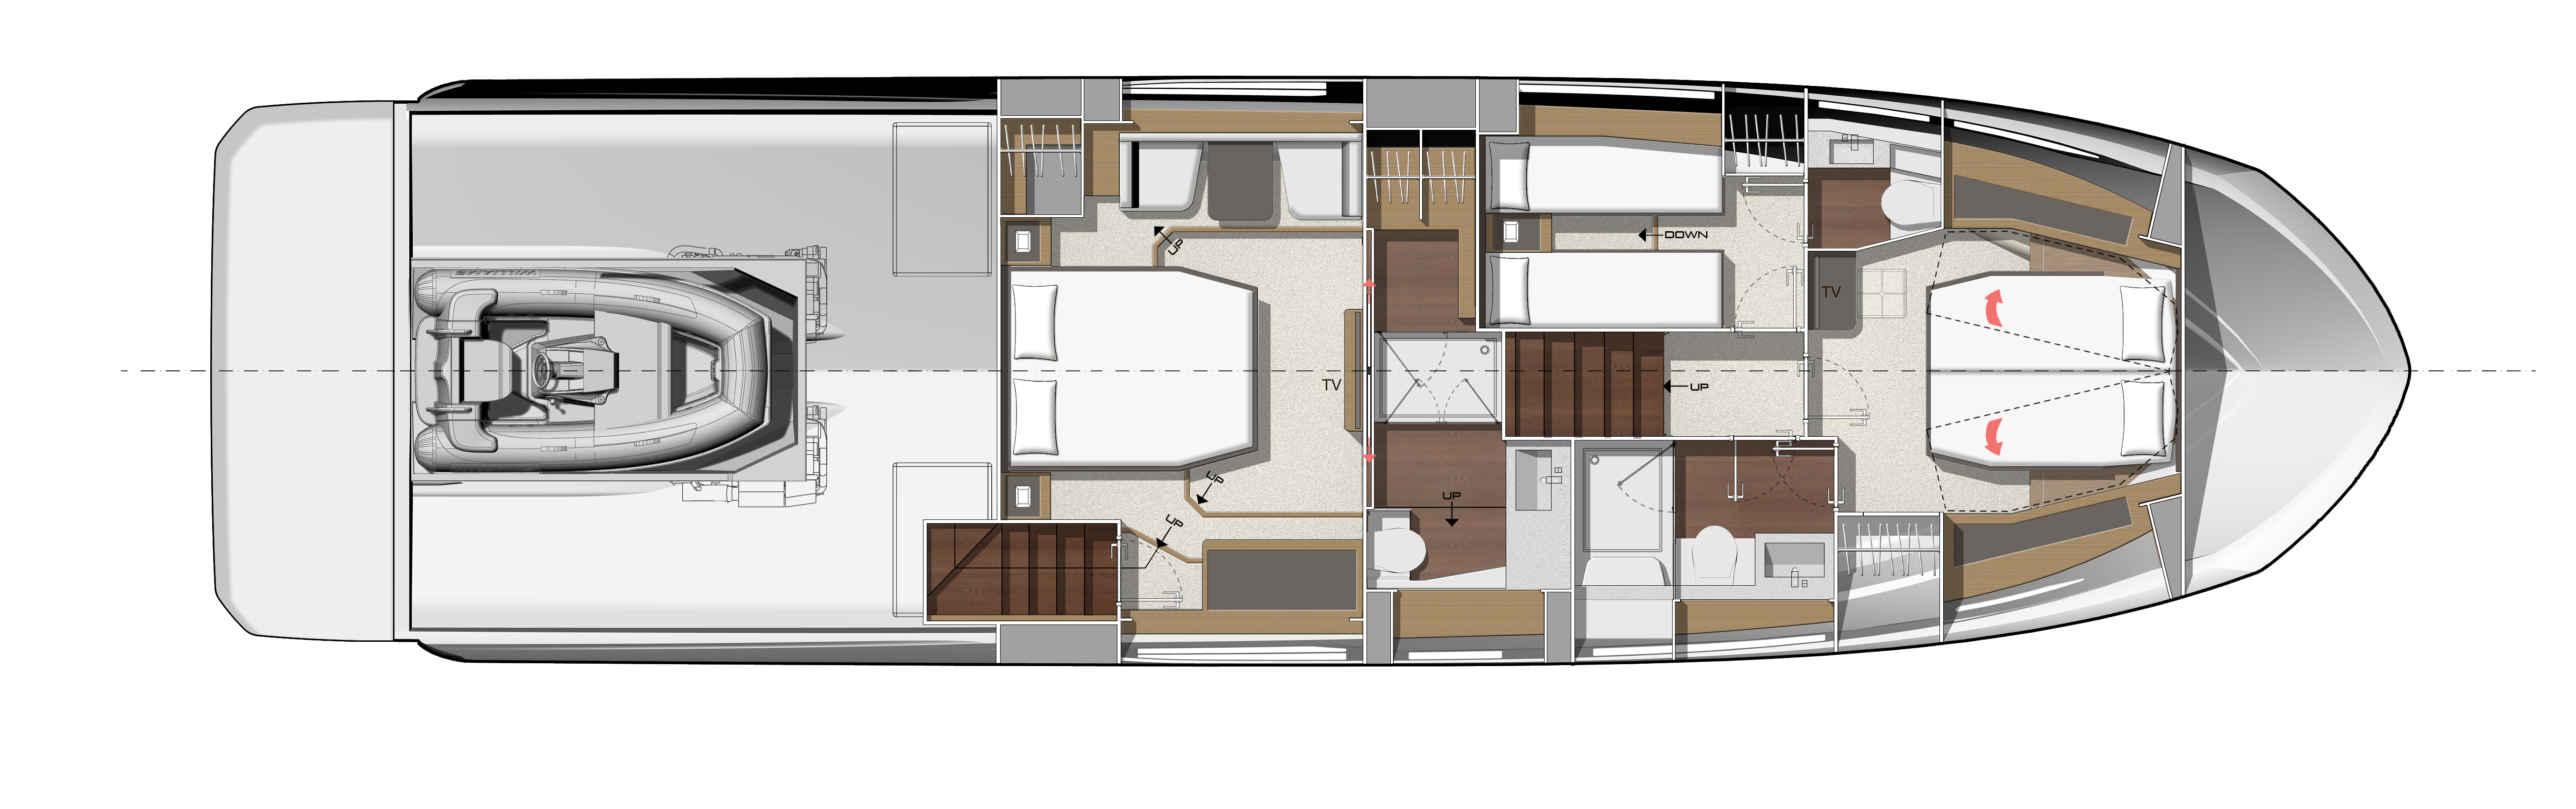 PRESTIGE-590S---Layout---3C---3T---garage-